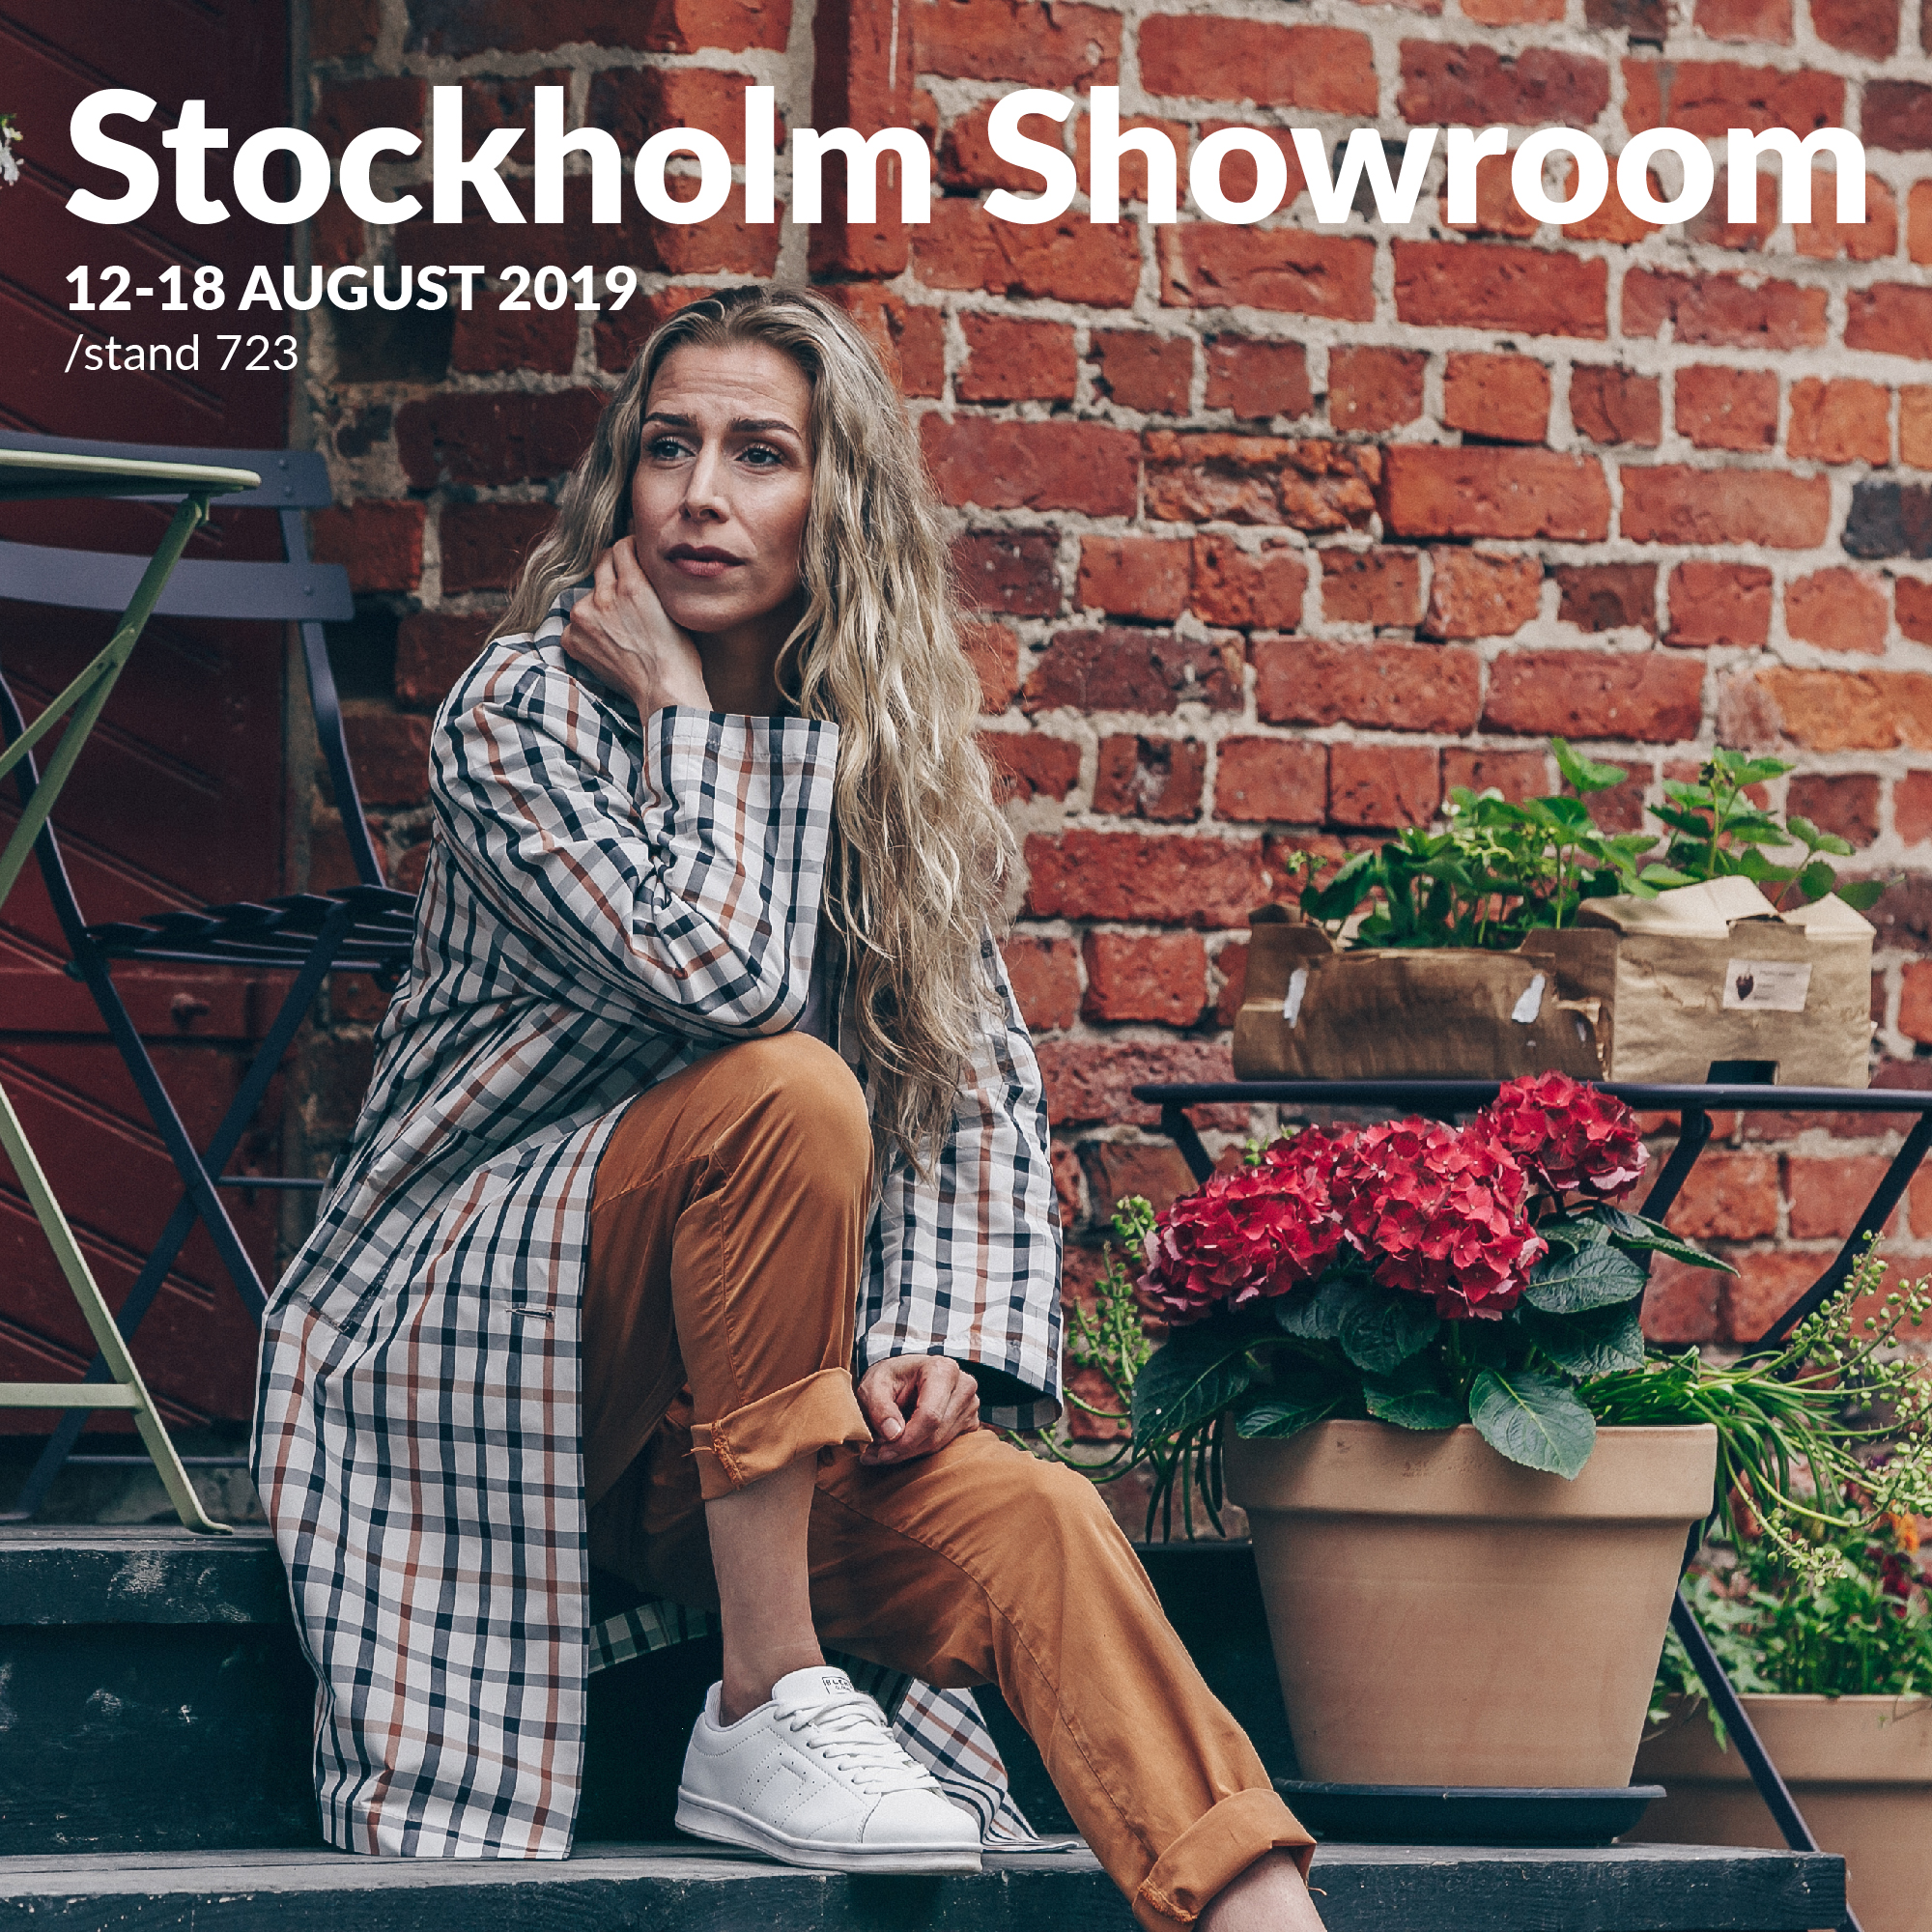 Dixi Coat and Flare Collection S/S 2020 at Stockholm Showroom 2019